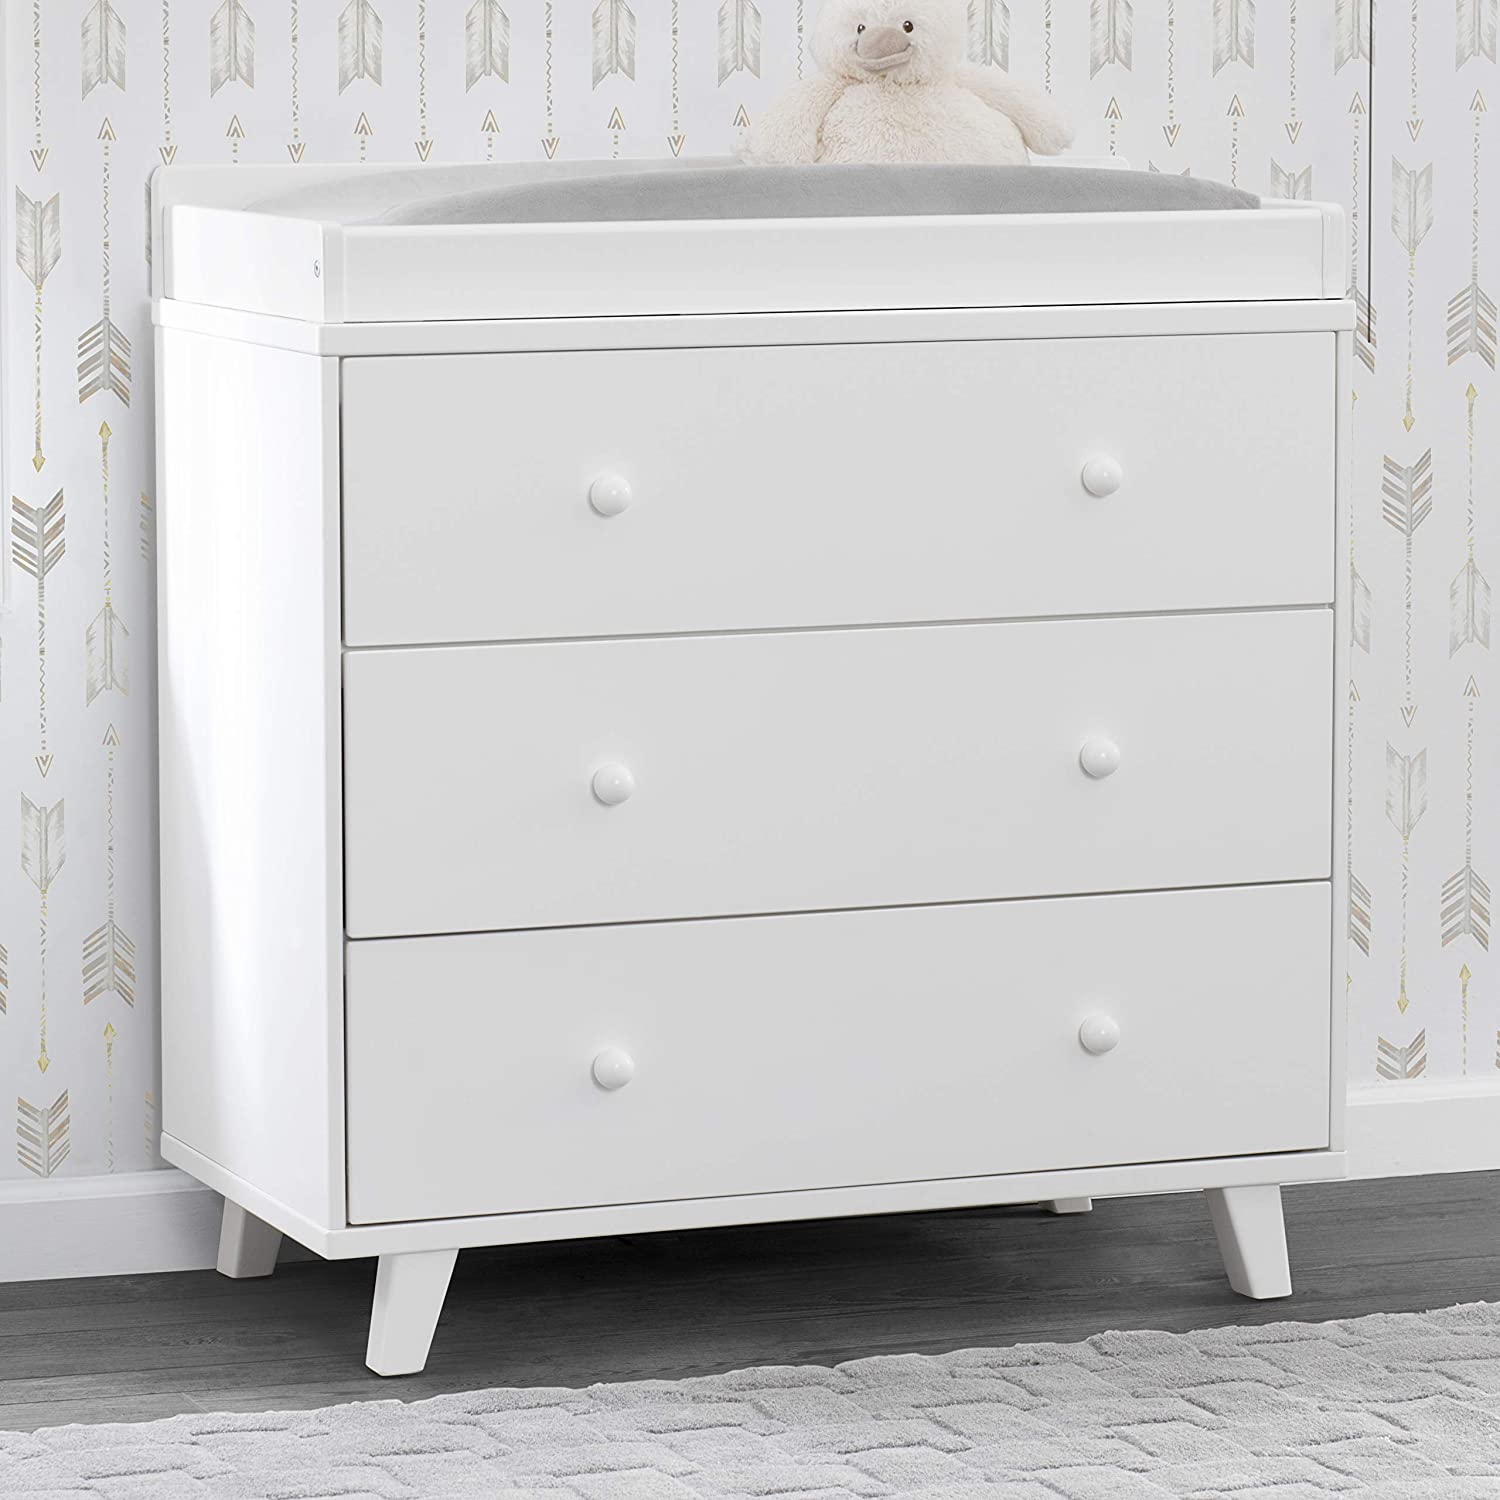 120 Ounce Delta Children Aster 3 Drawer Dresser with Changing Top